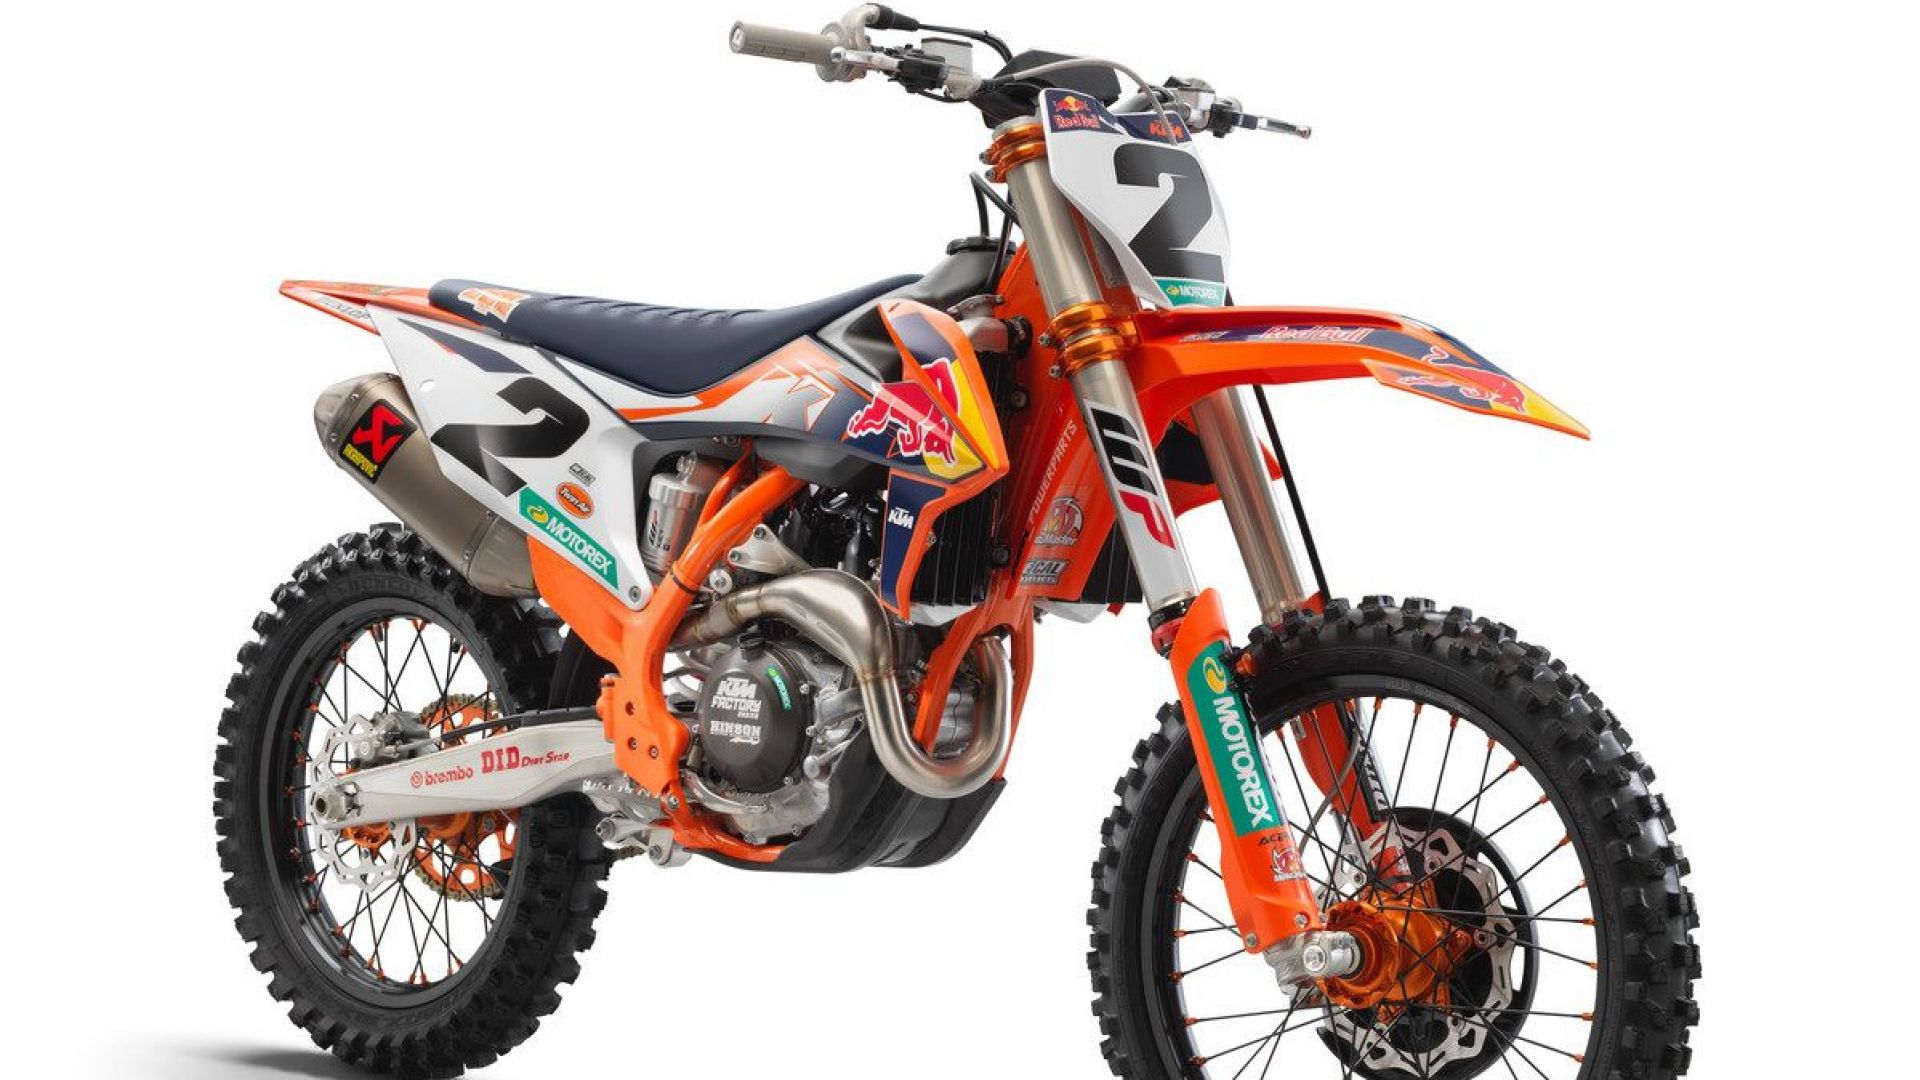 2021 KTM 450 SX-F Factory Edition available this month